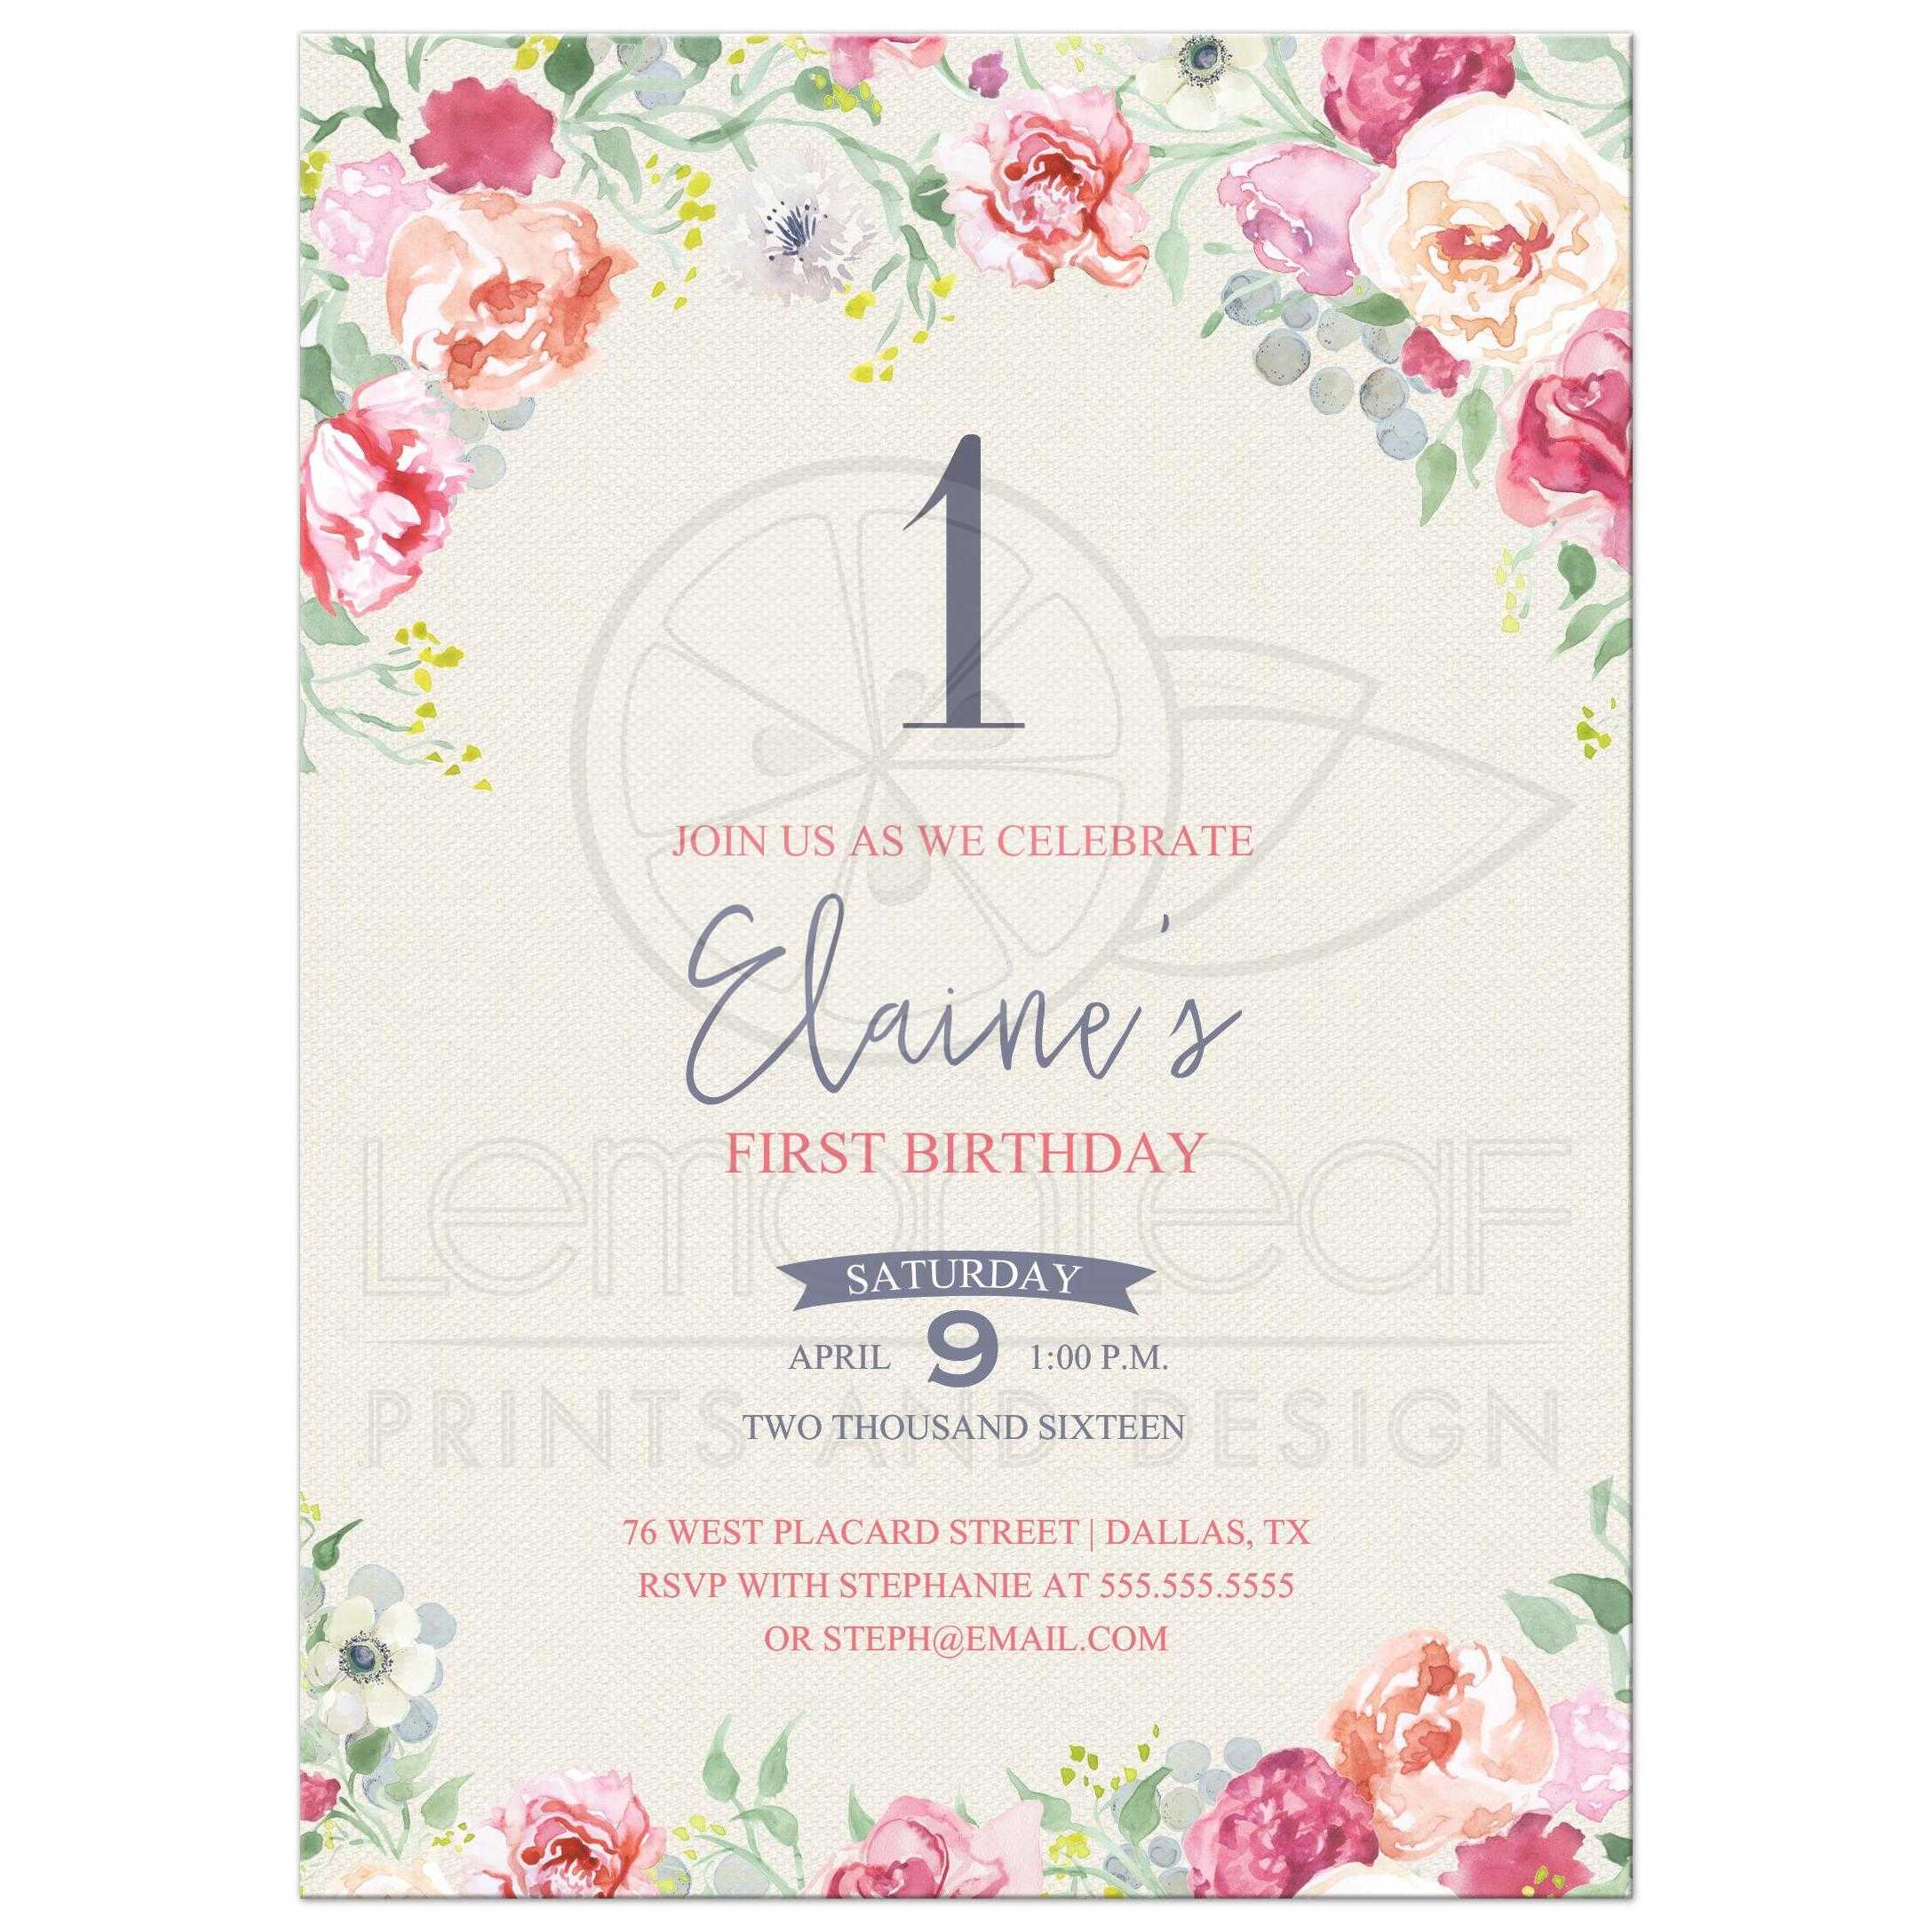 pink birthday party invitations zaxa